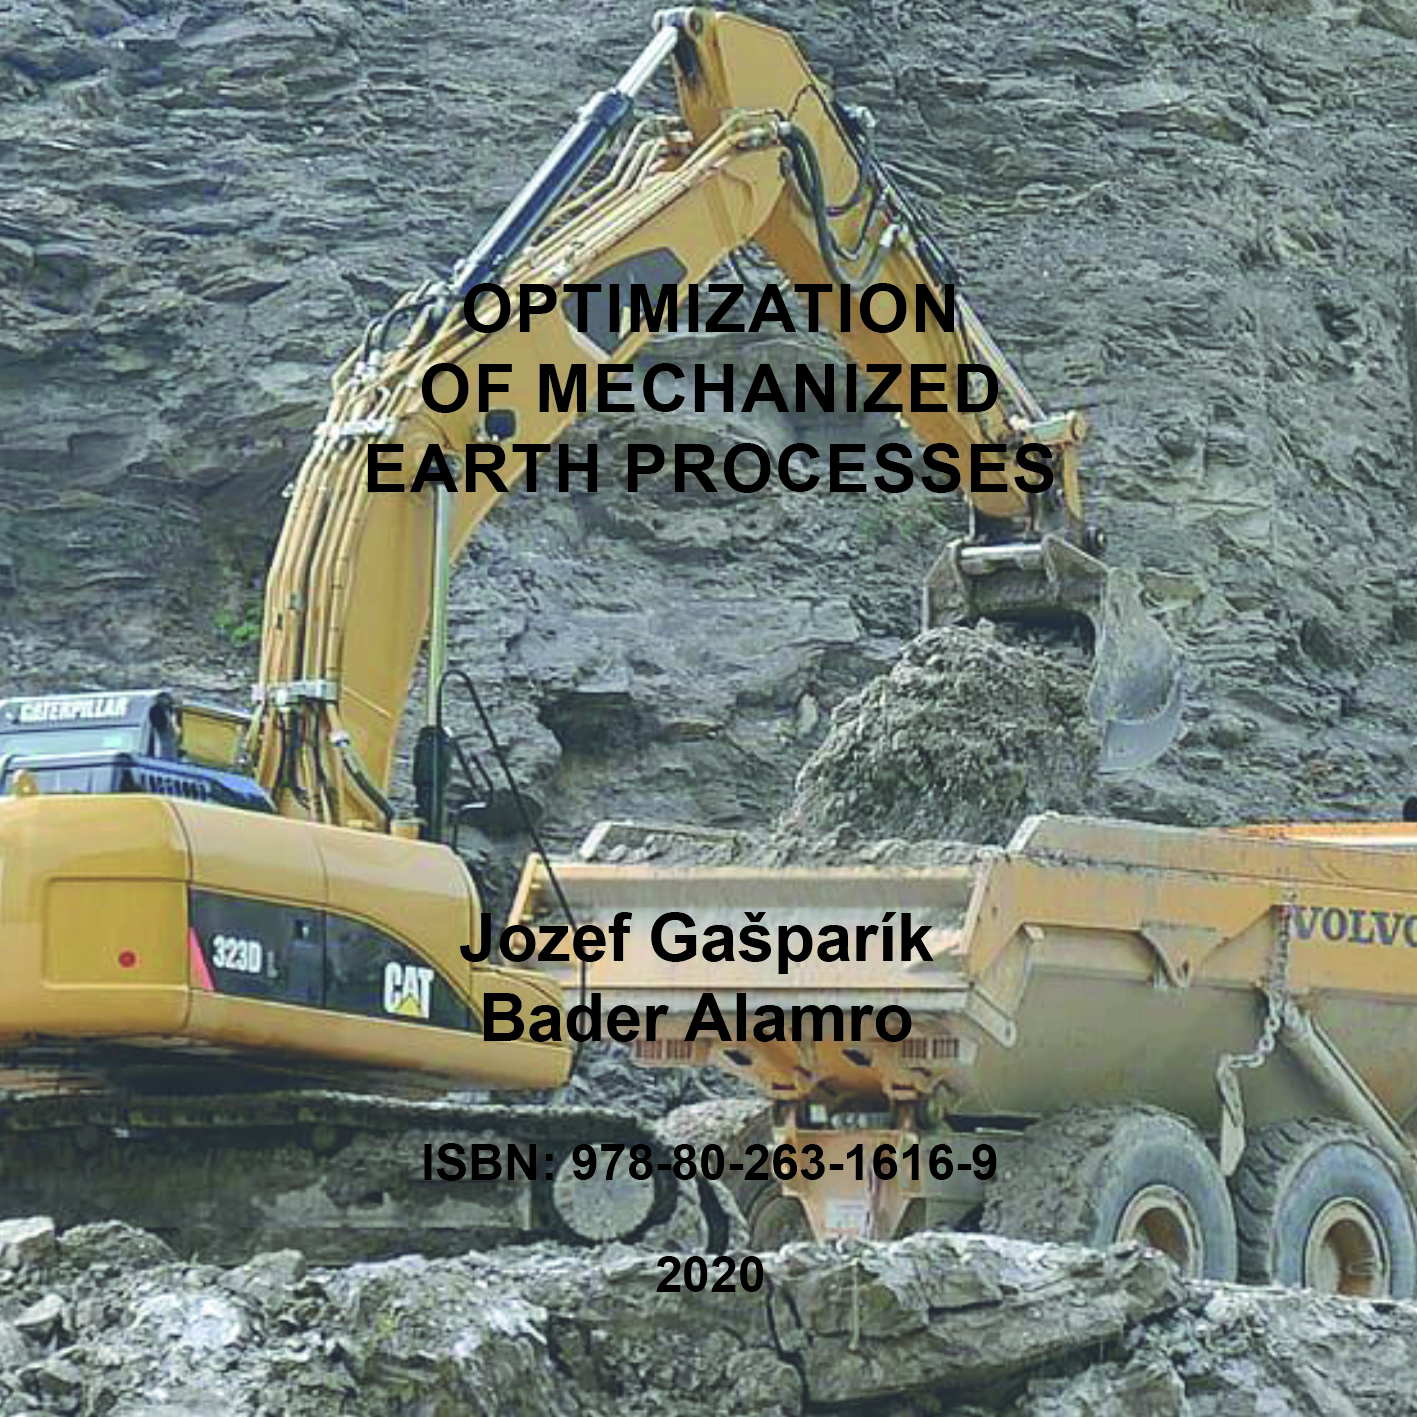 Optimization of mechanized earth processes